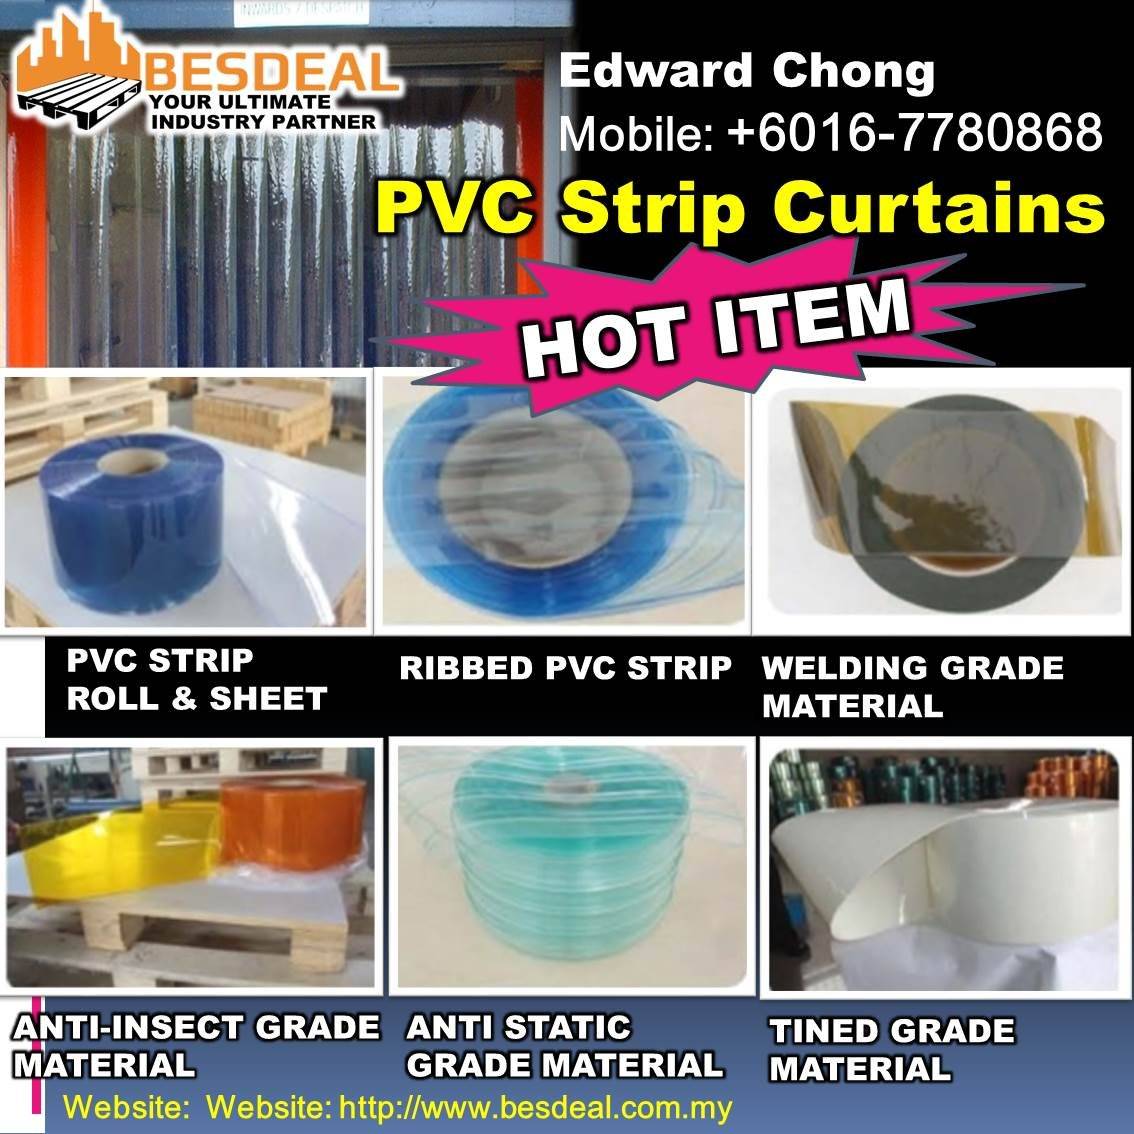 PVC Strip Curtains Hot Item Sales Now